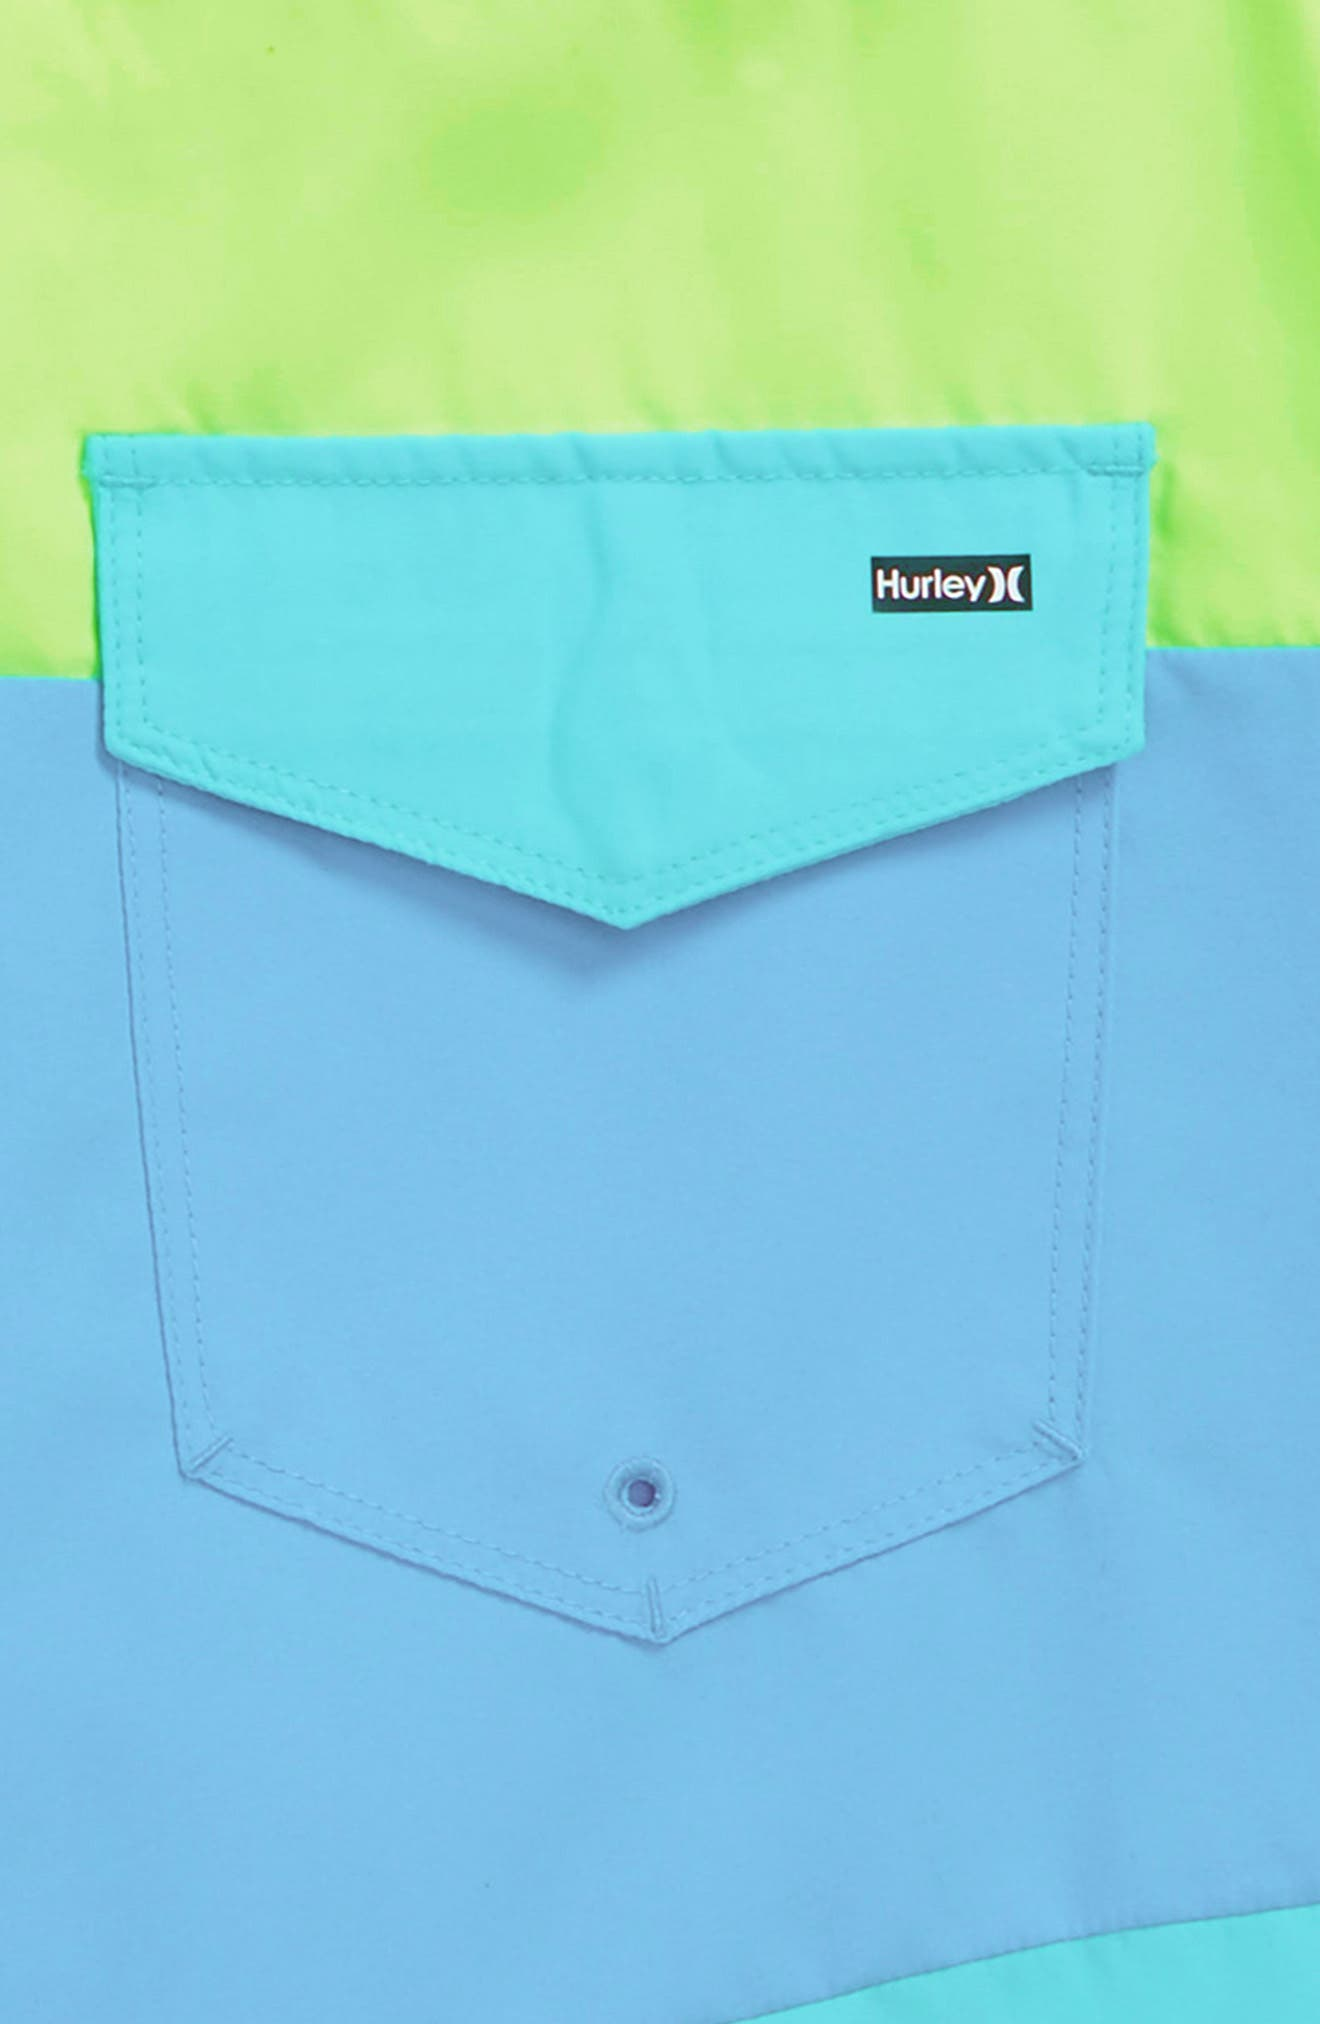 Triple Threat Board Shorts,                             Alternate thumbnail 3, color,                             Ghost Green